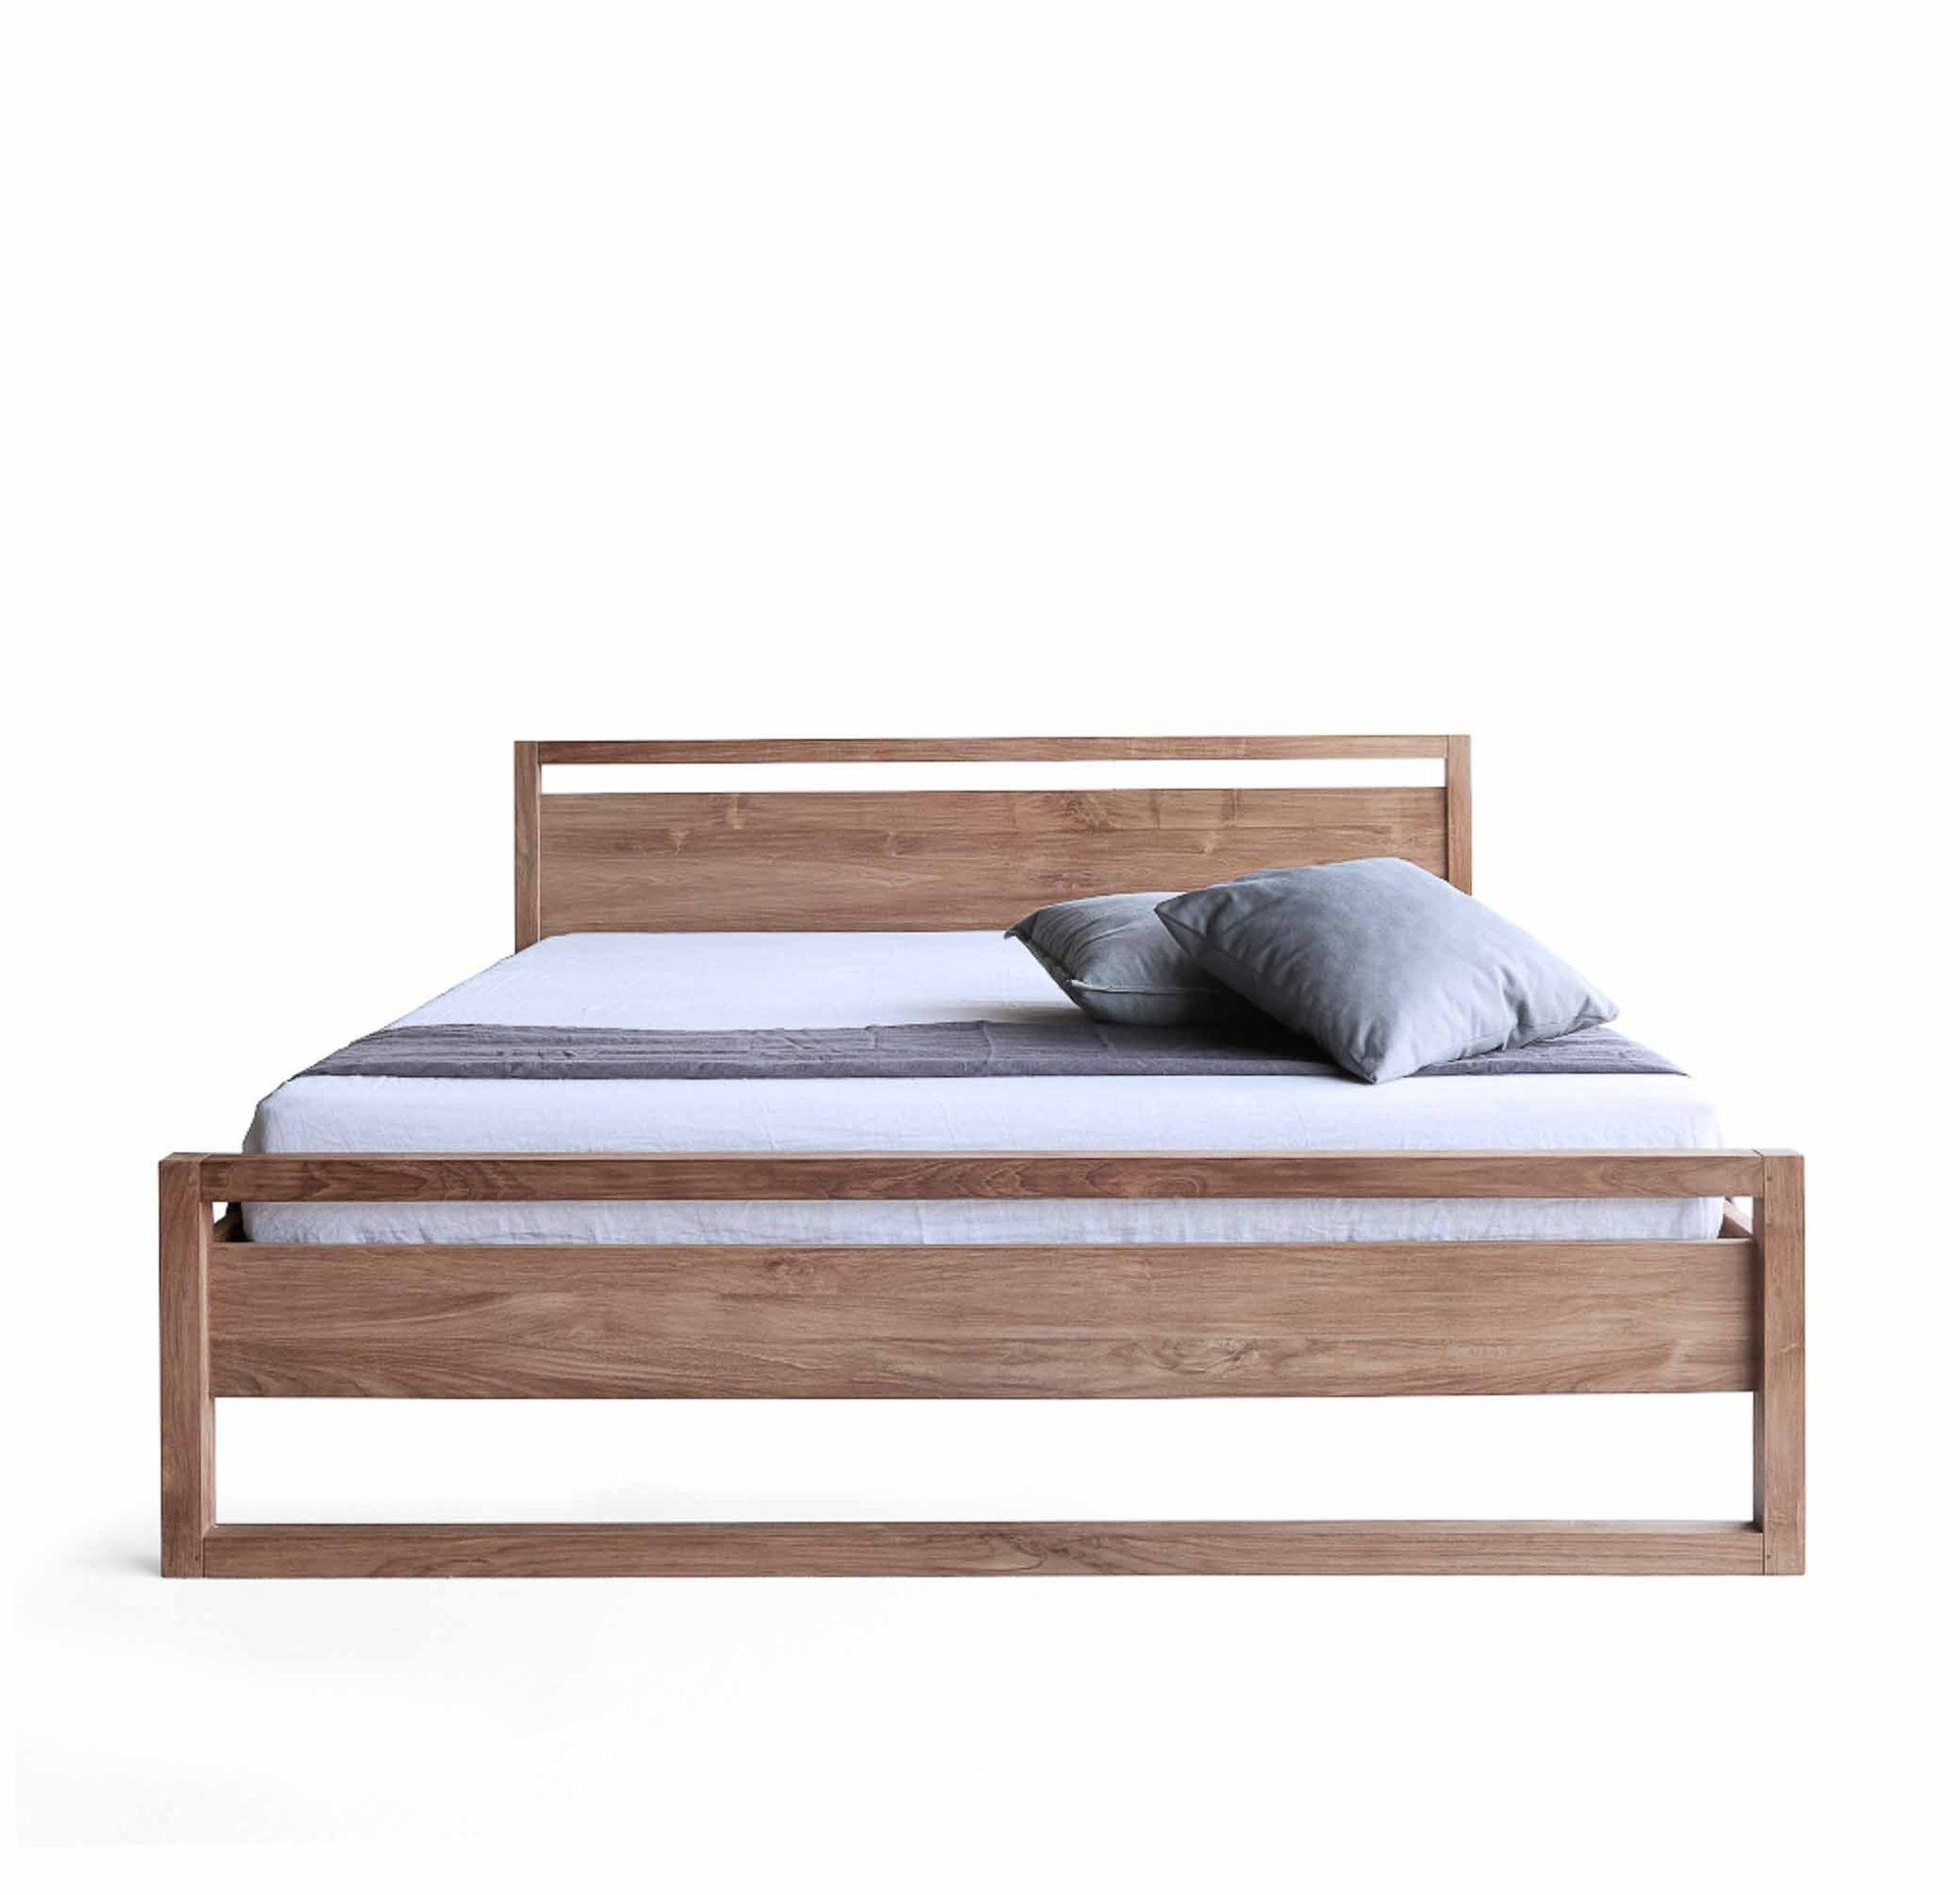 Teak Bed Frame Light Frame Bed Australia Size in 2020